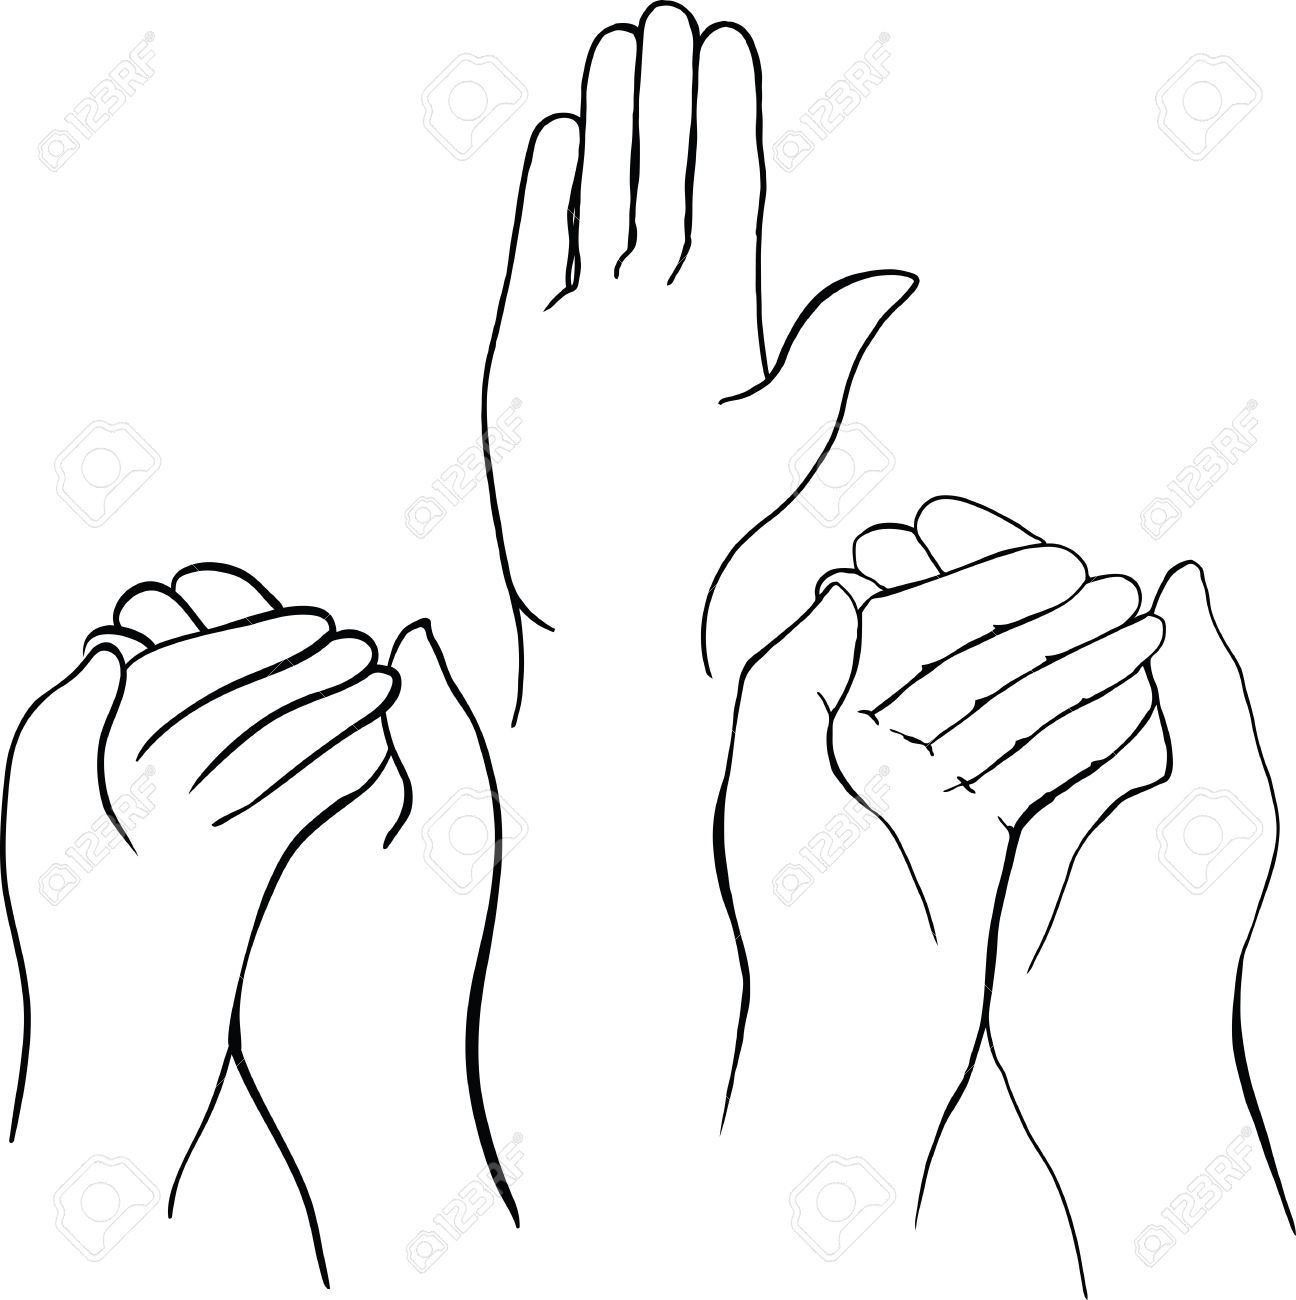 1296x1300 Vector Drawing Of Hands Holding Something The Good Smith Brilliant